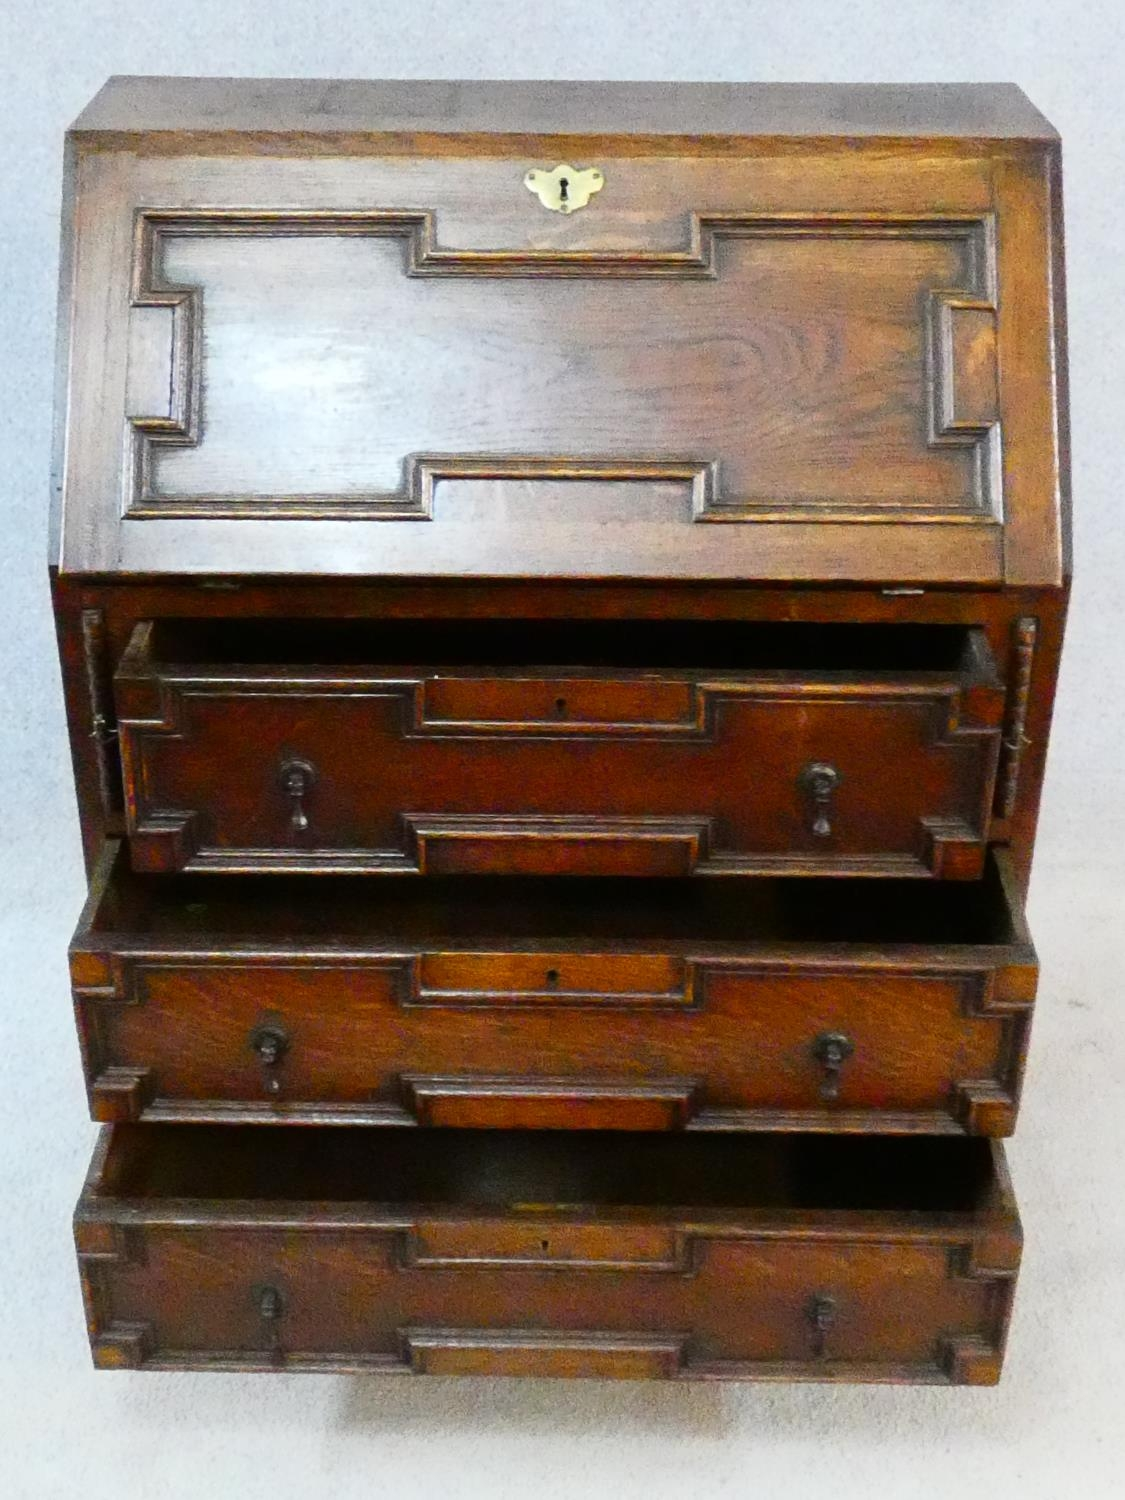 A mid century Jacobean style oak bureau with lozenge inset panels and fall front revealing fitted - Image 6 of 26